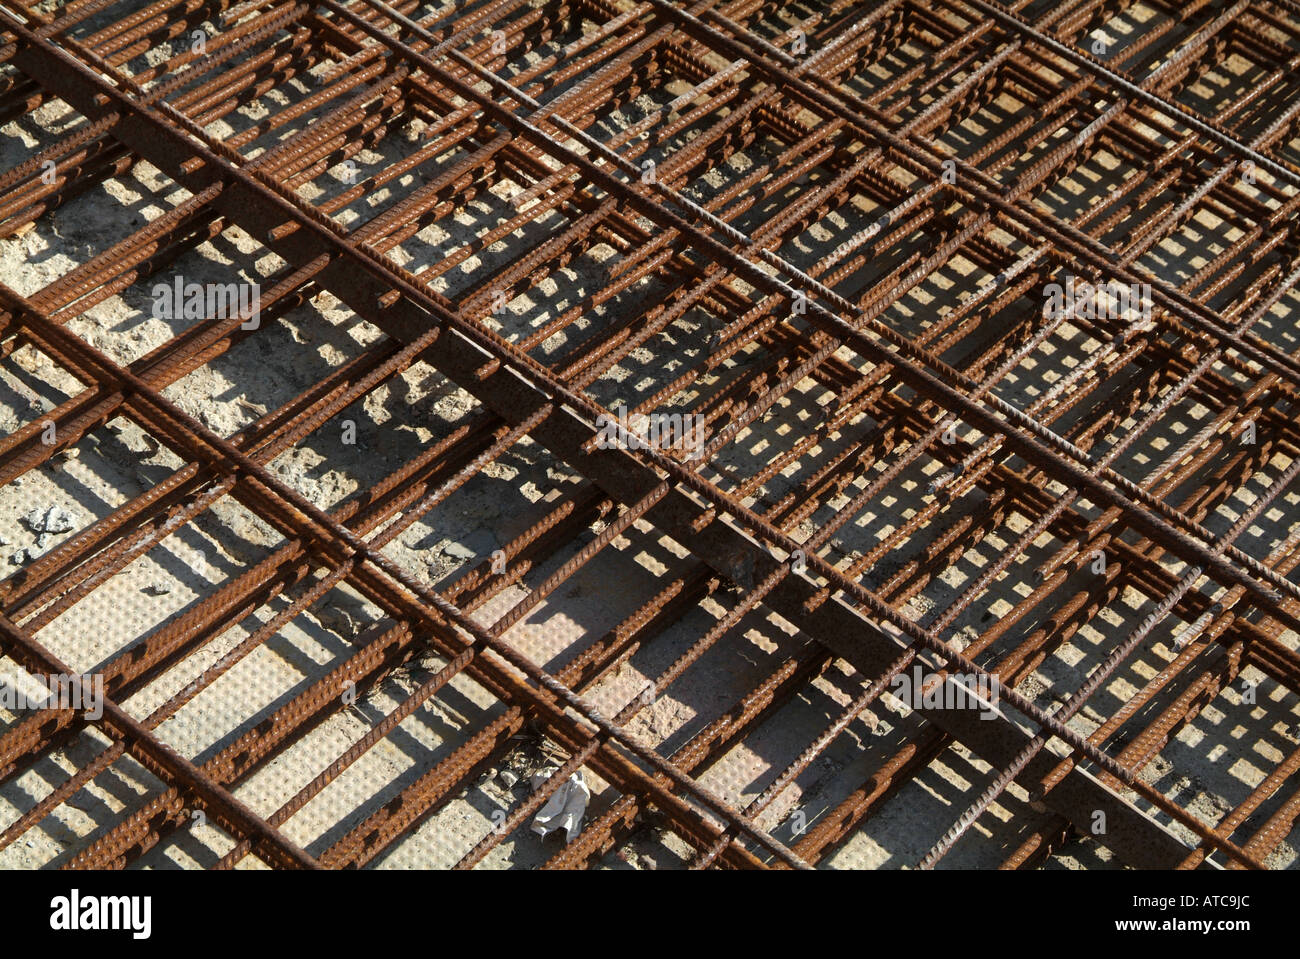 Steel, reinforcement, rebar, construction, concrete, slab, floor, building, build, reinforced - Stock Image